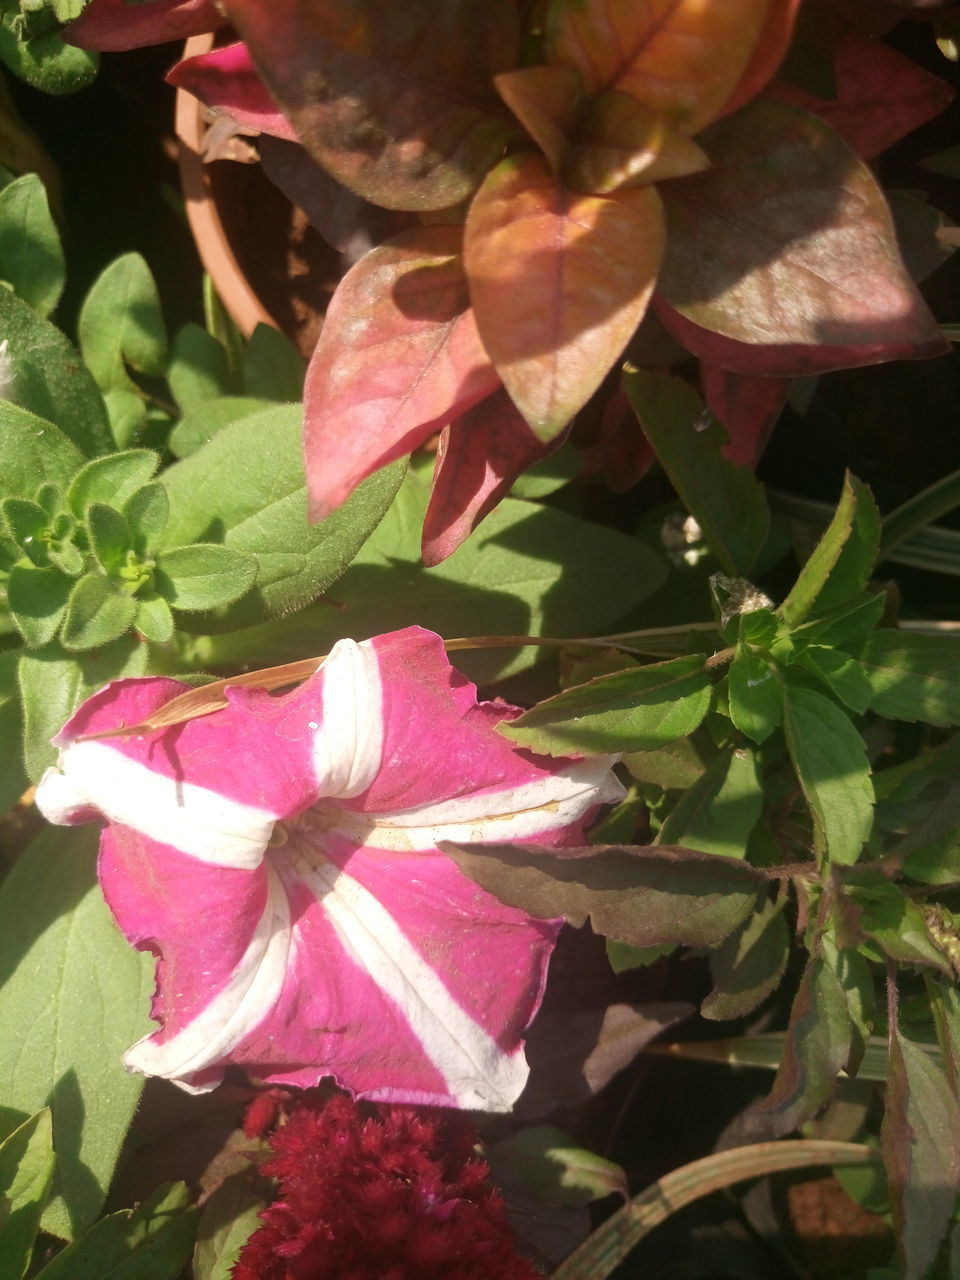 flower, leaf, growth, pink color, petal, beauty in nature, nature, fragility, plant, freshness, outdoors, no people, flower head, day, close-up, blooming, periwinkle, petunia